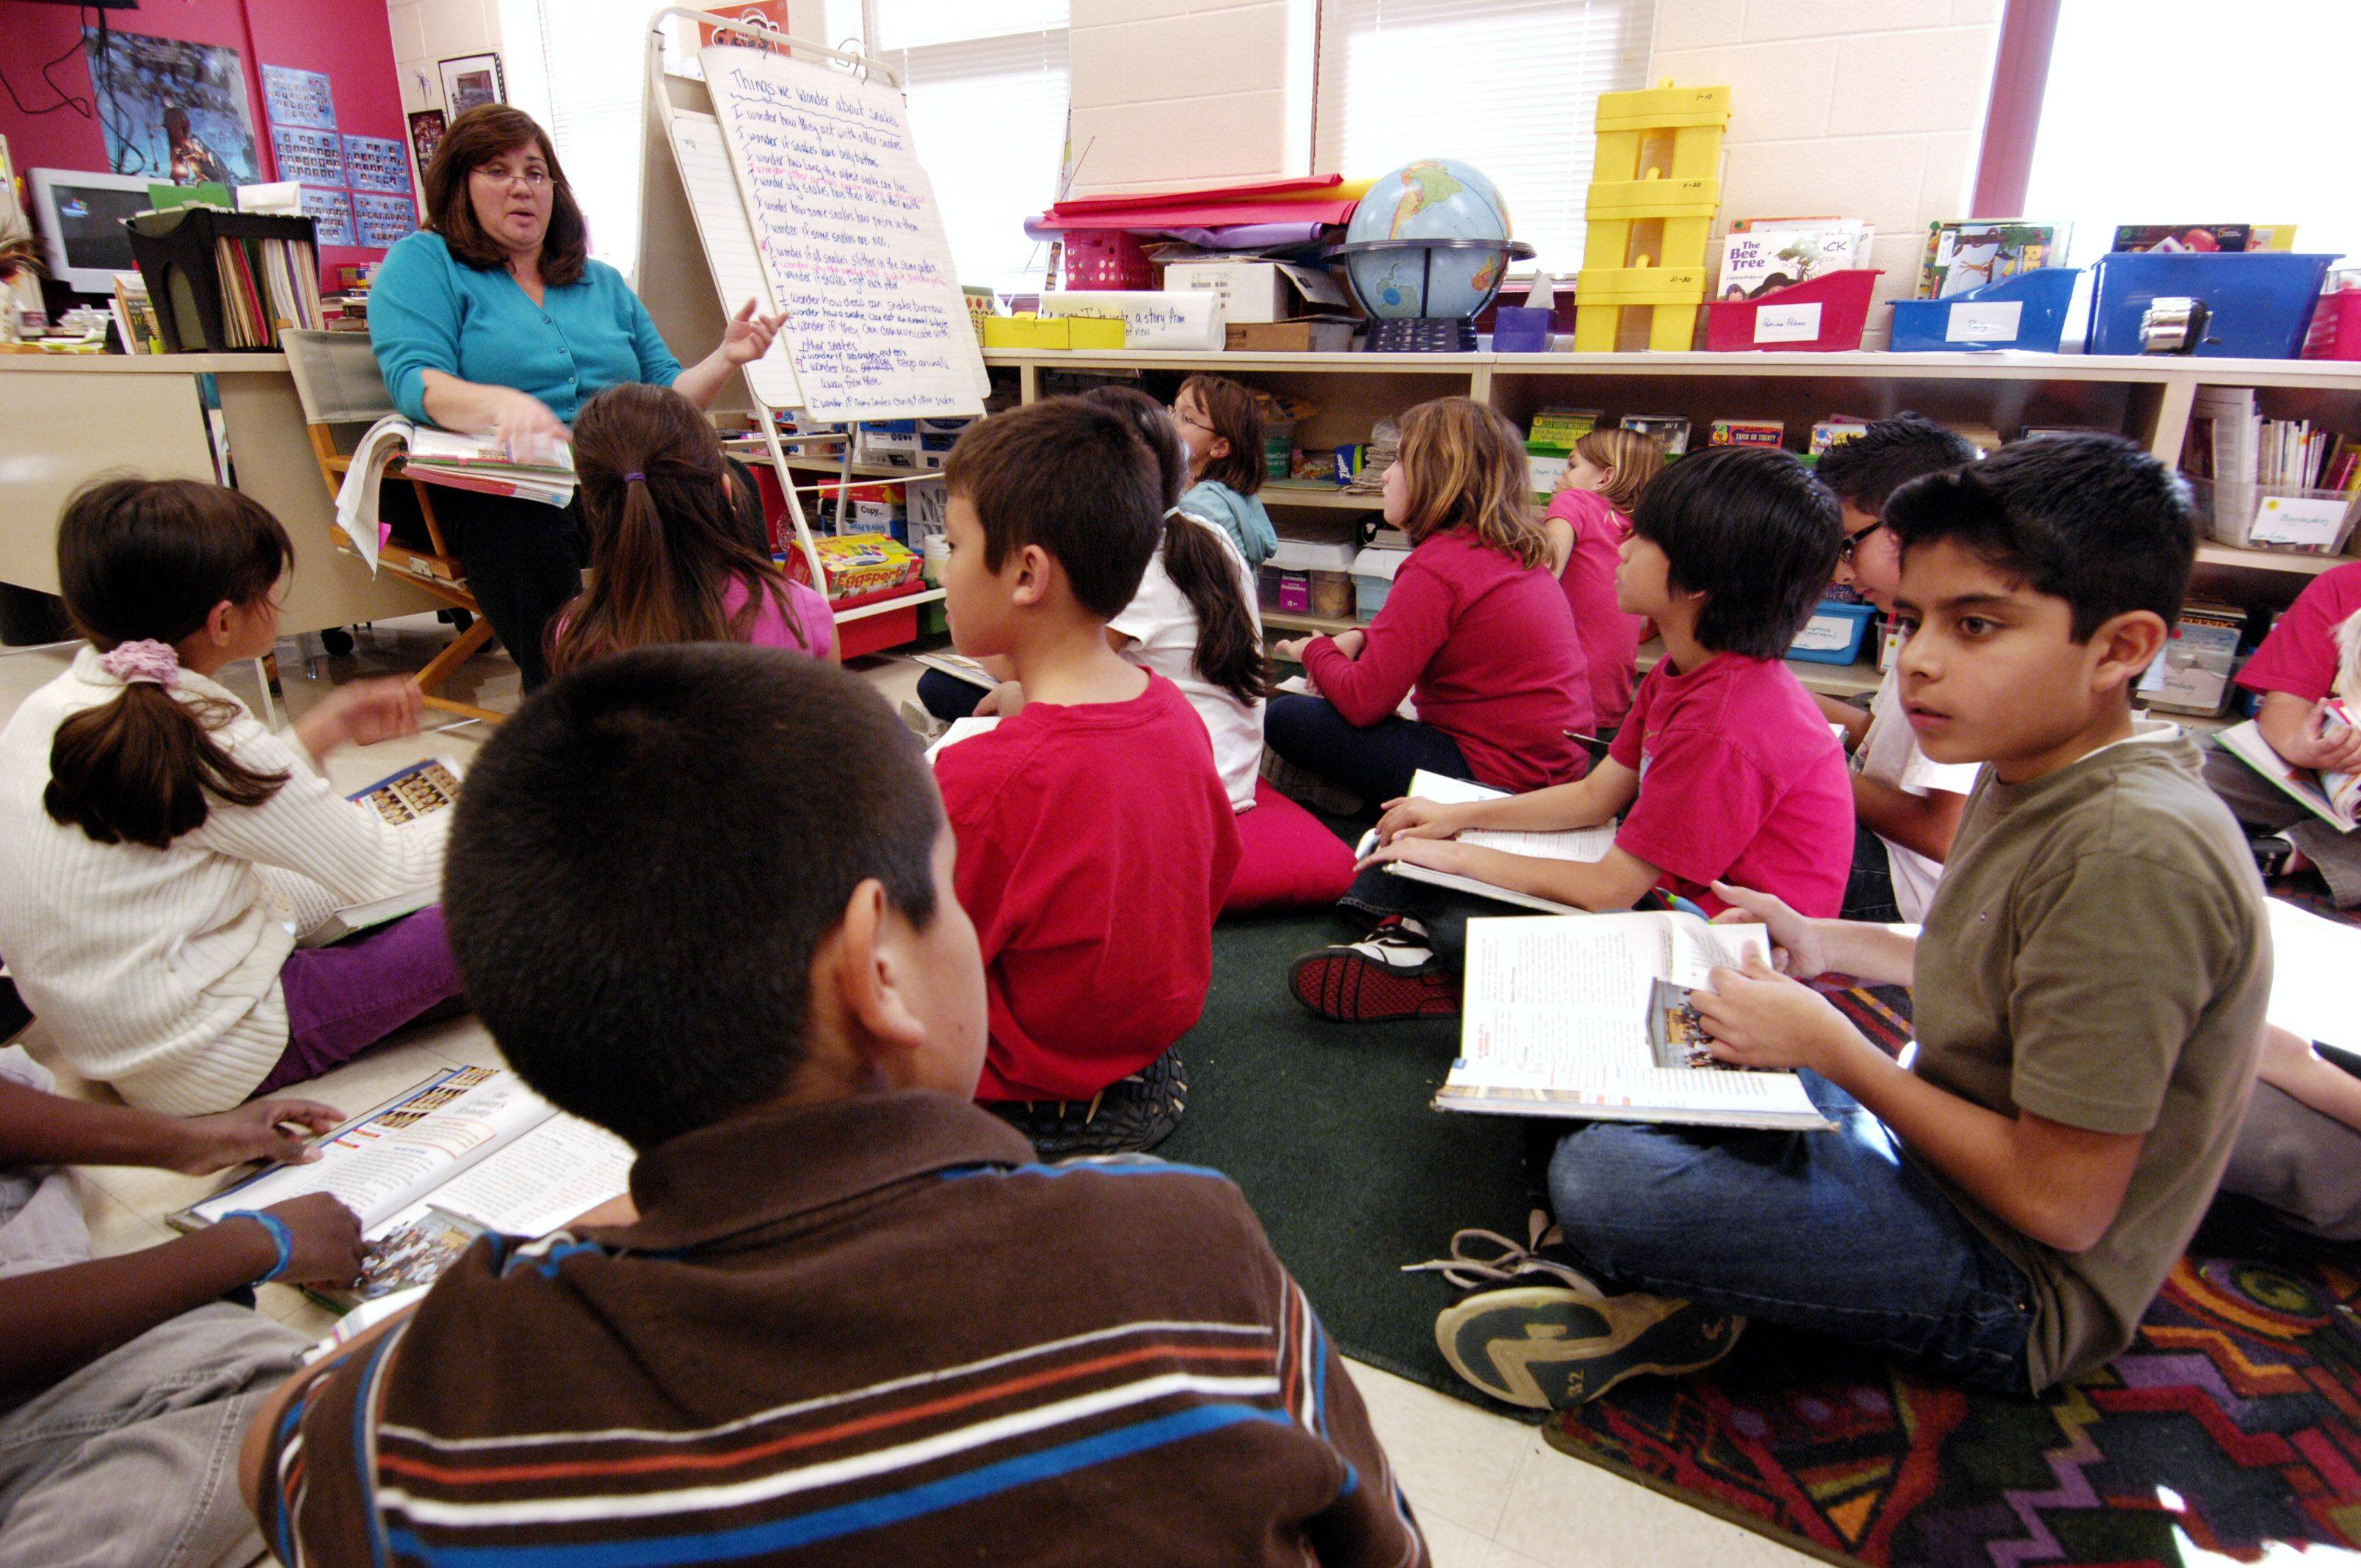 Fourth-grade teacher Paula Amota teaches a class at Timber Trails Elementary School, which was able to get a passing grade from the state because of the improved performance of students with limited English skills.